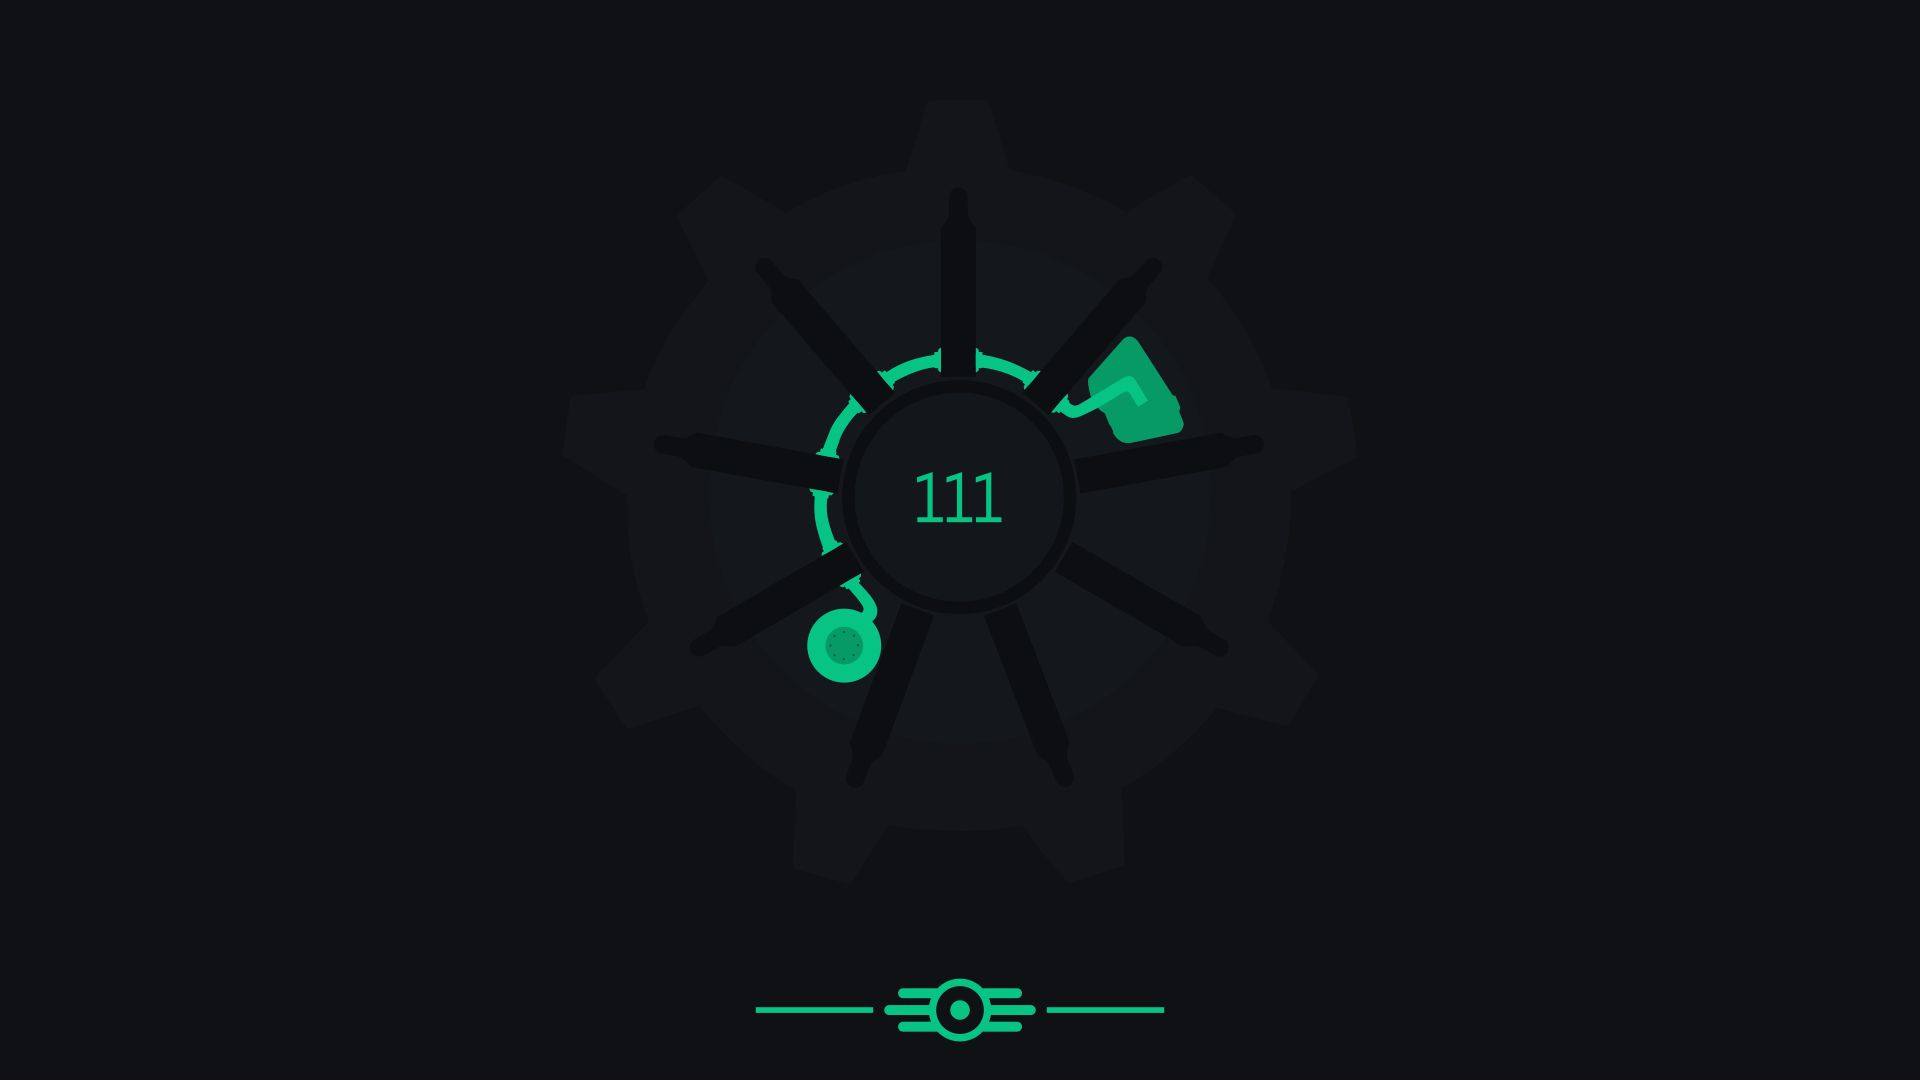 Fallout 4 Vault 111 minimalist wallpaper pack [4k] by CM2D on